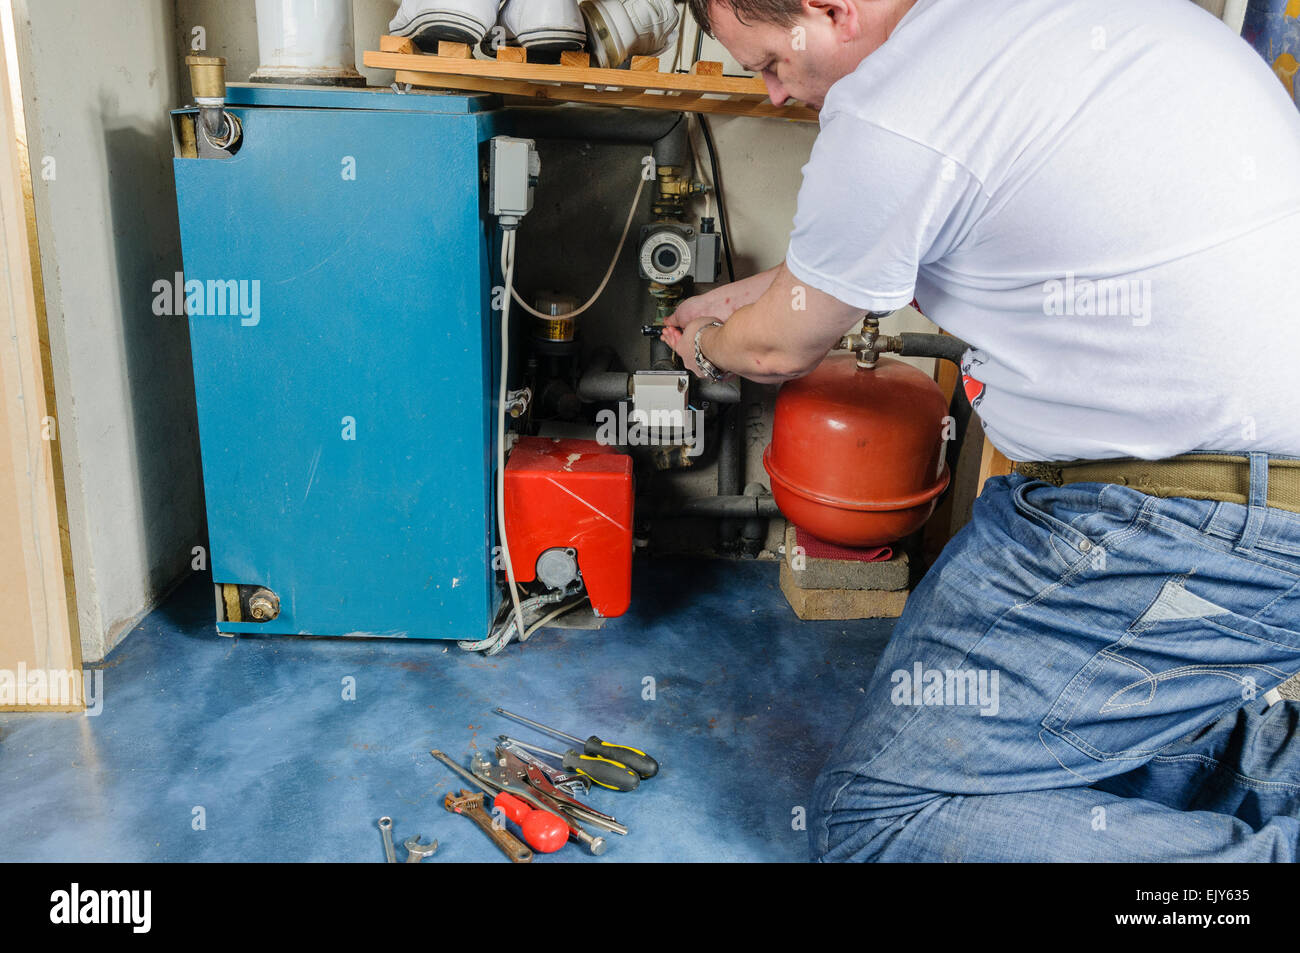 Boiler Repairs Stock Photos & Boiler Repairs Stock Images - Alamy